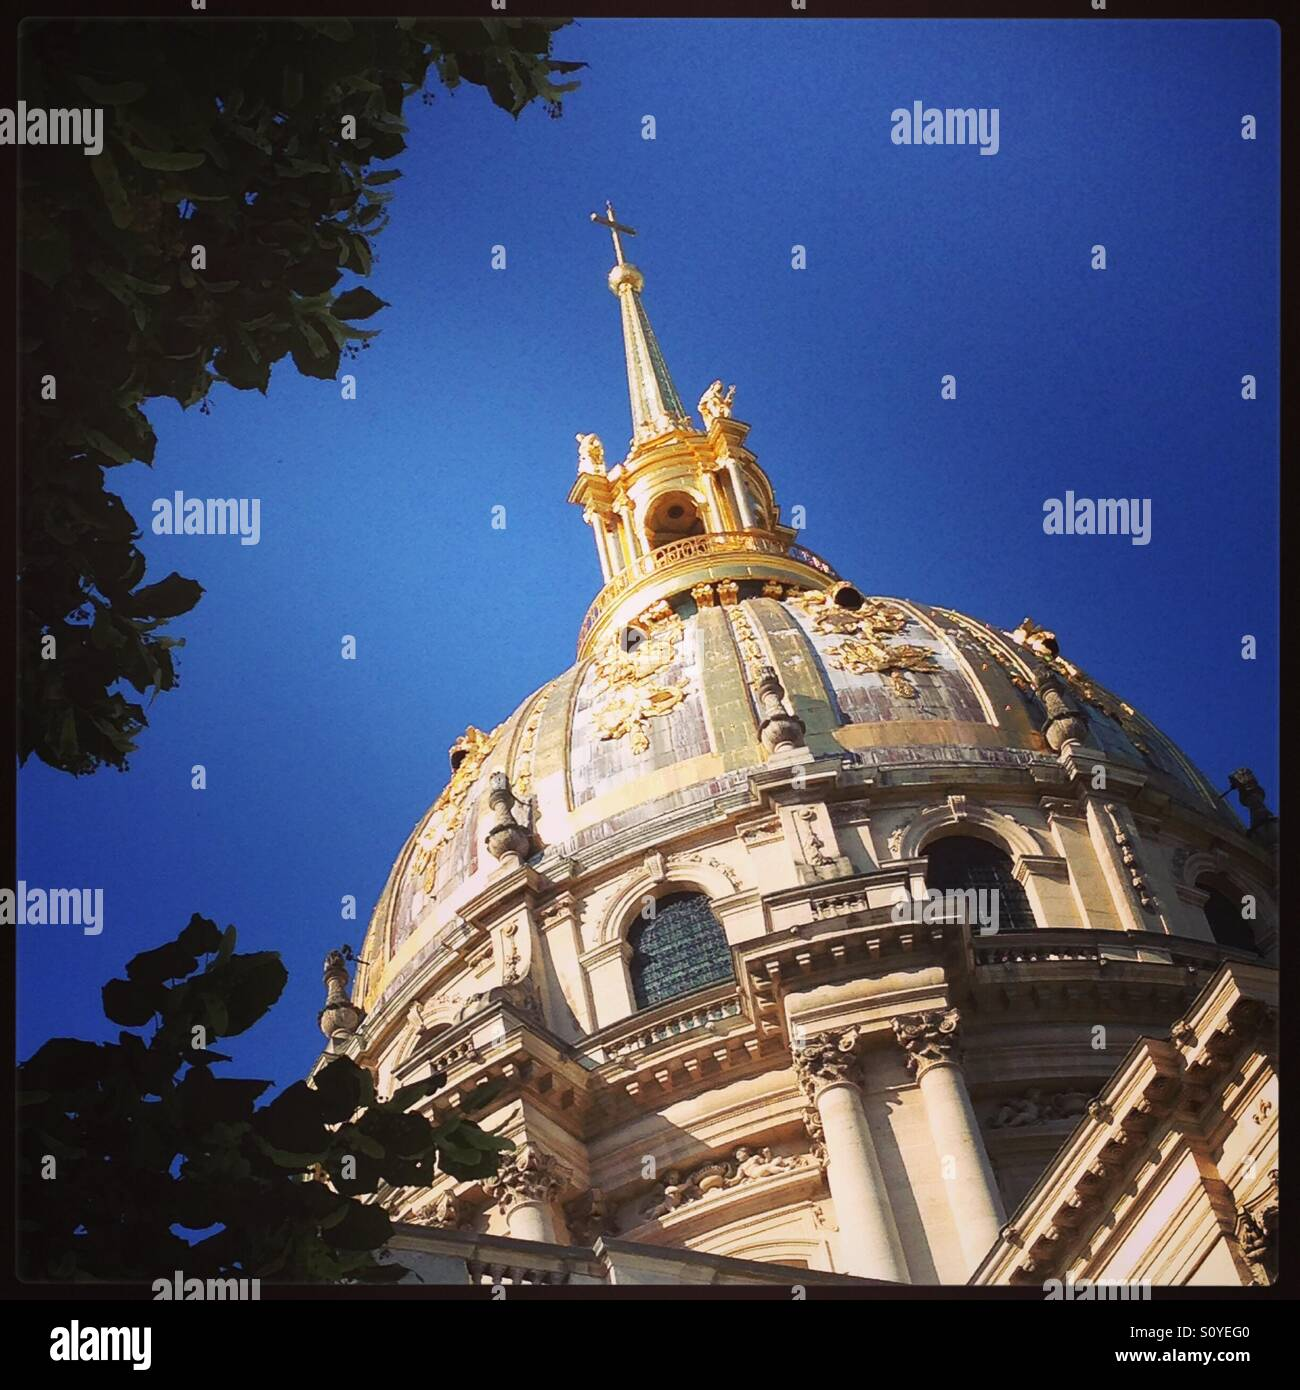 The dome of napoleons resting place, Paris - Stock Image